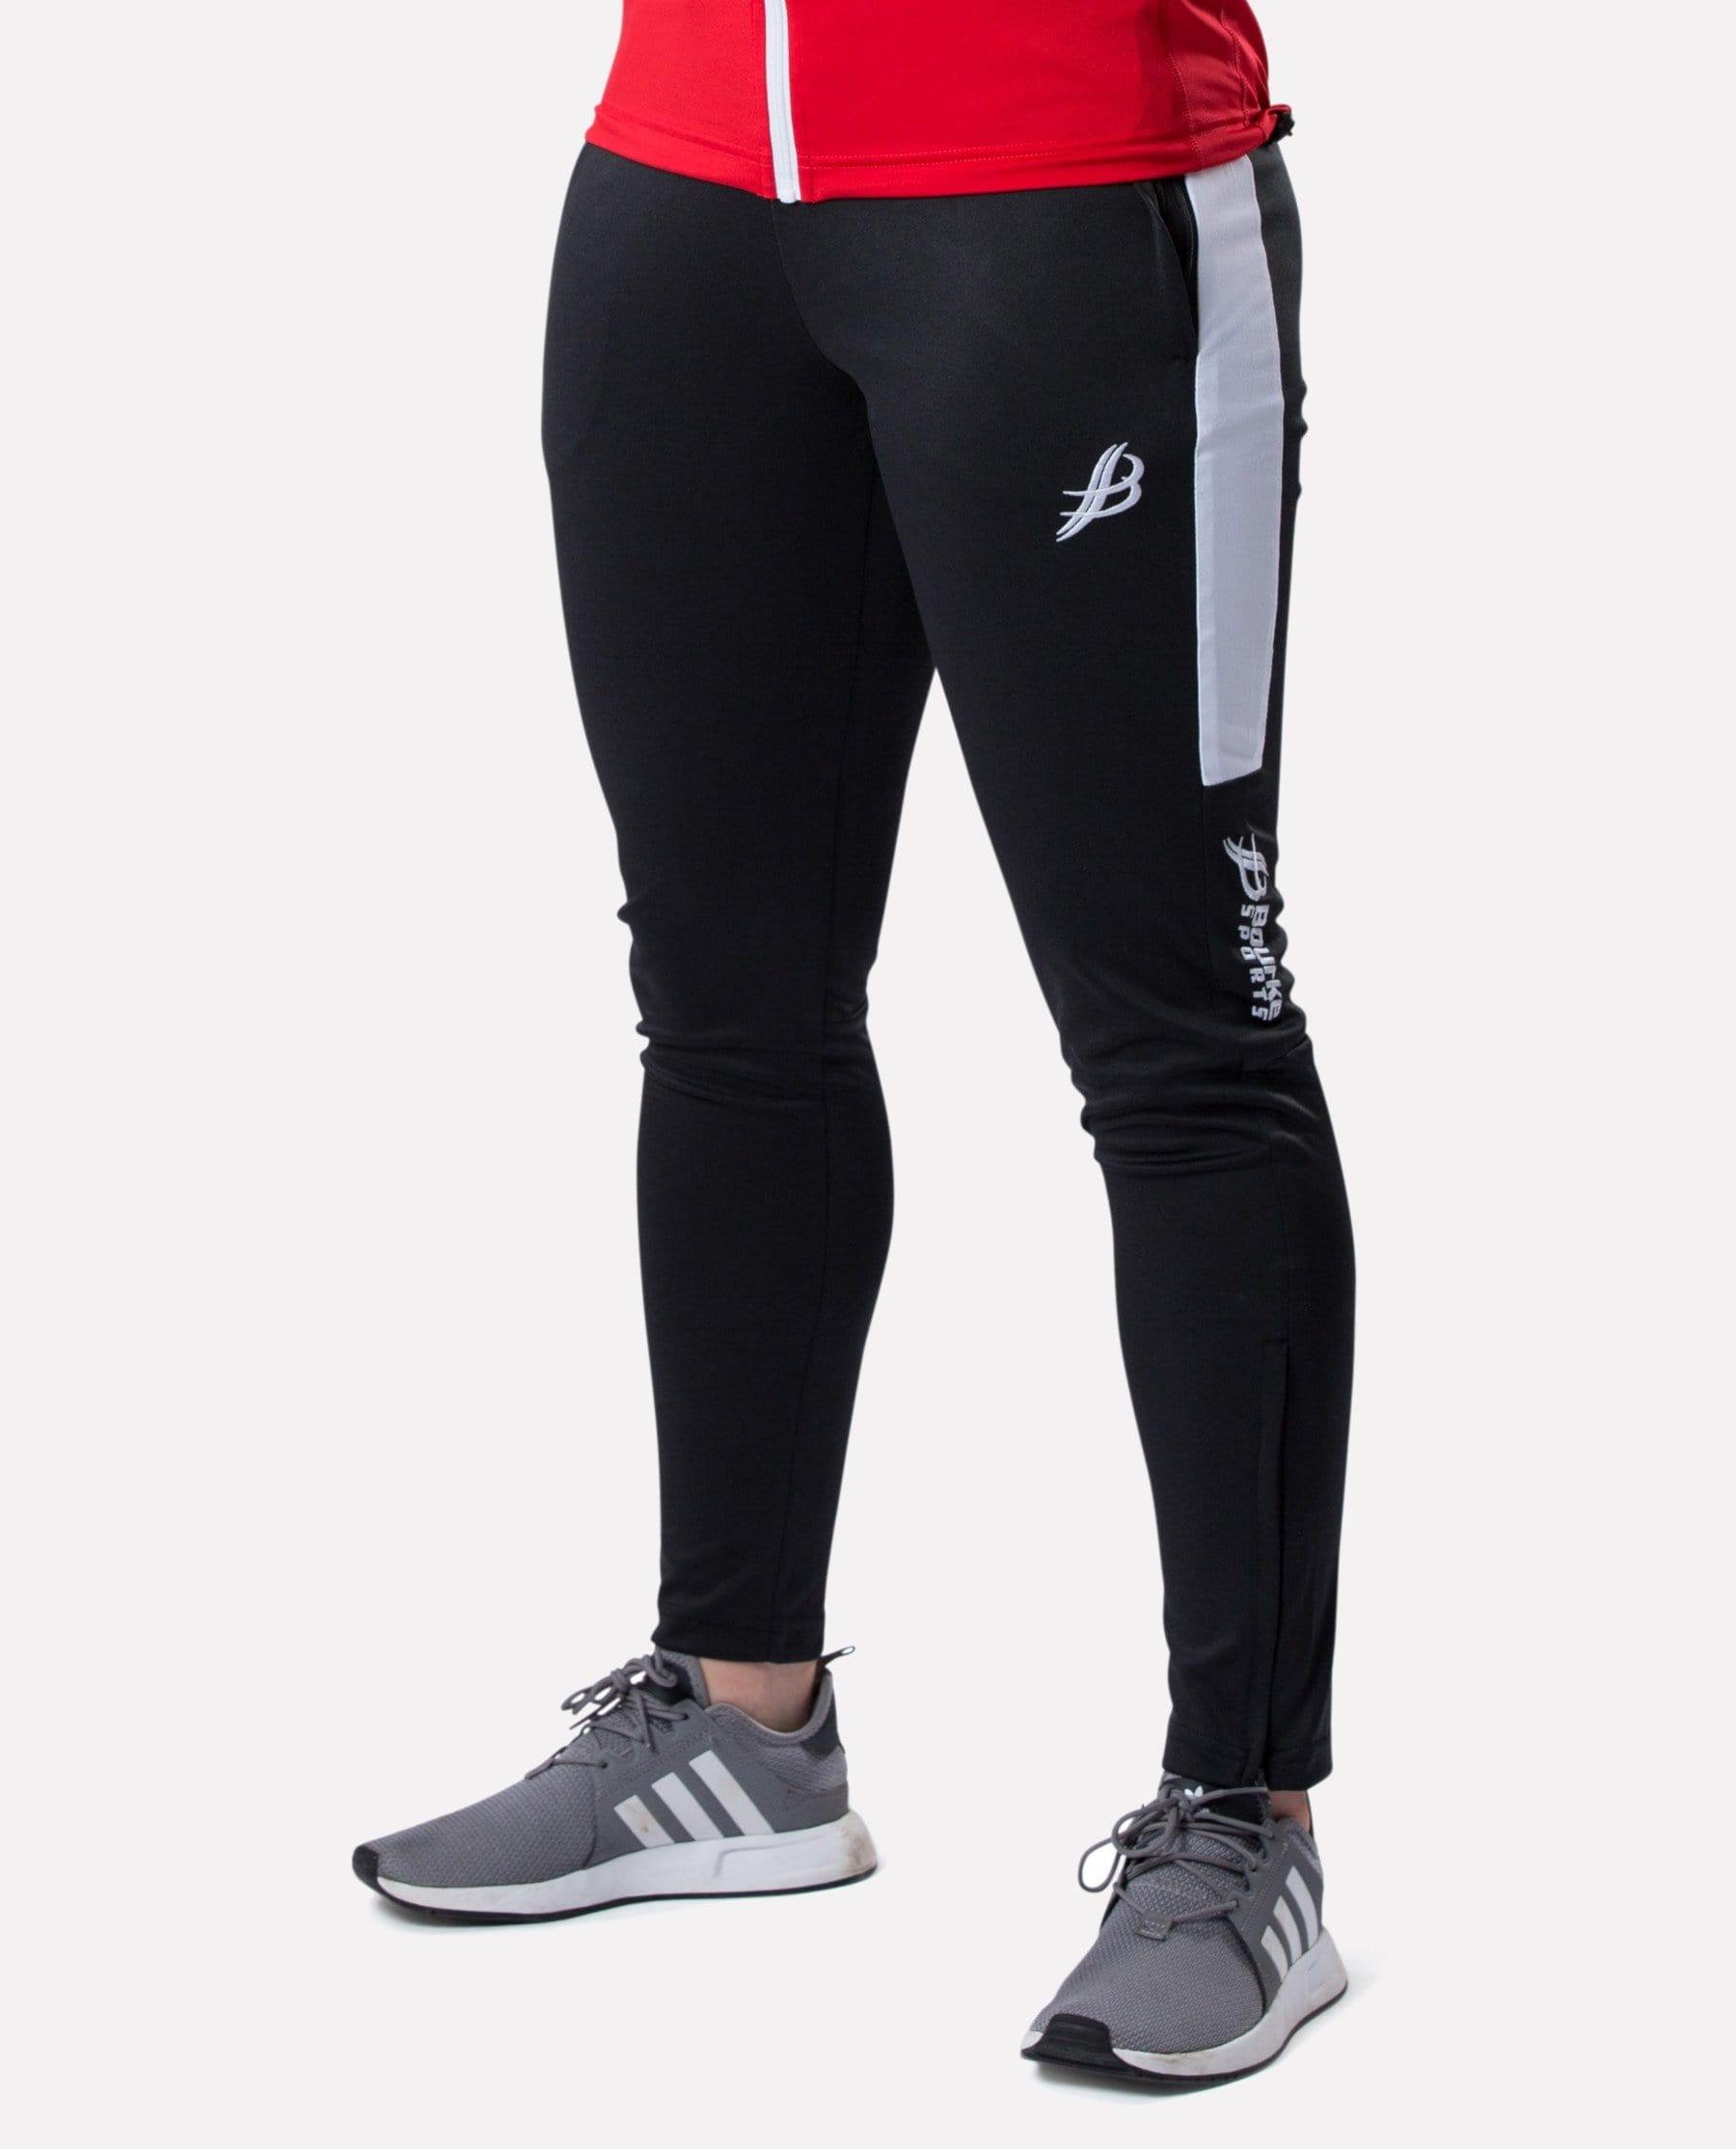 ALPHA Adult Skinny Pants (Black/White) - Bourke Sports Limited